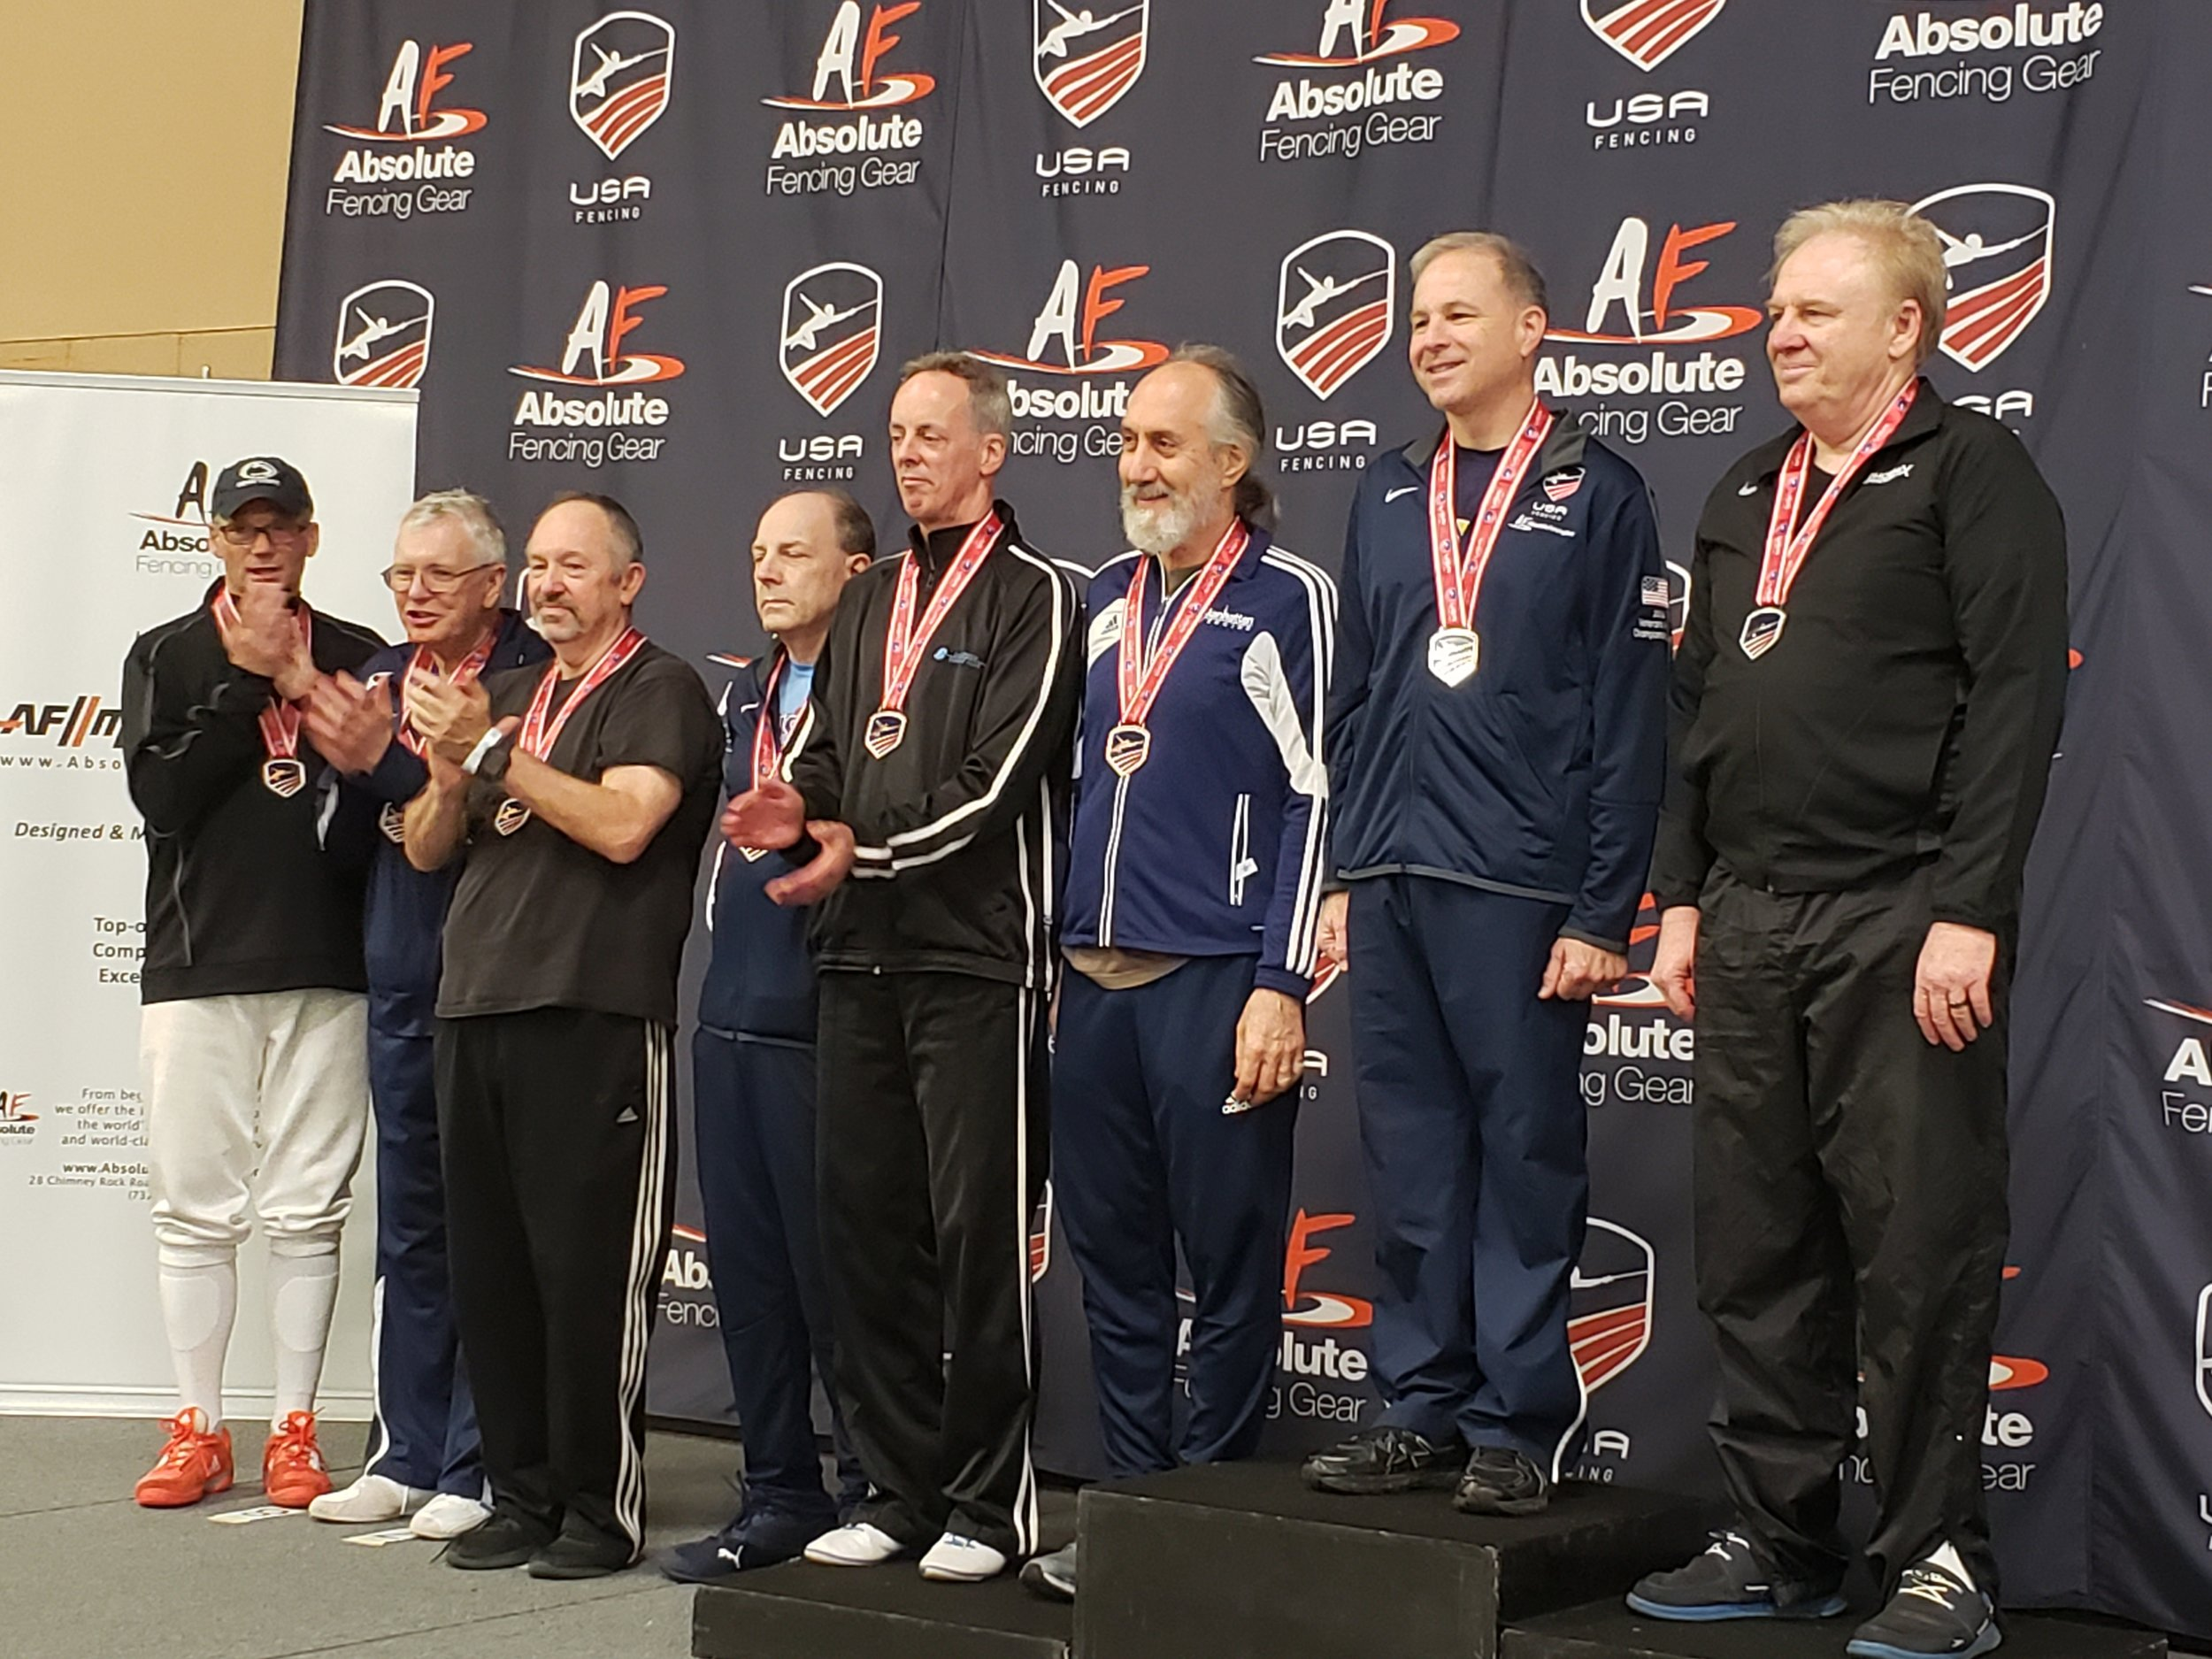 Jeff (3rd from left) accepting his medal for 6th place in Veterans 60-69 Men's Saber.